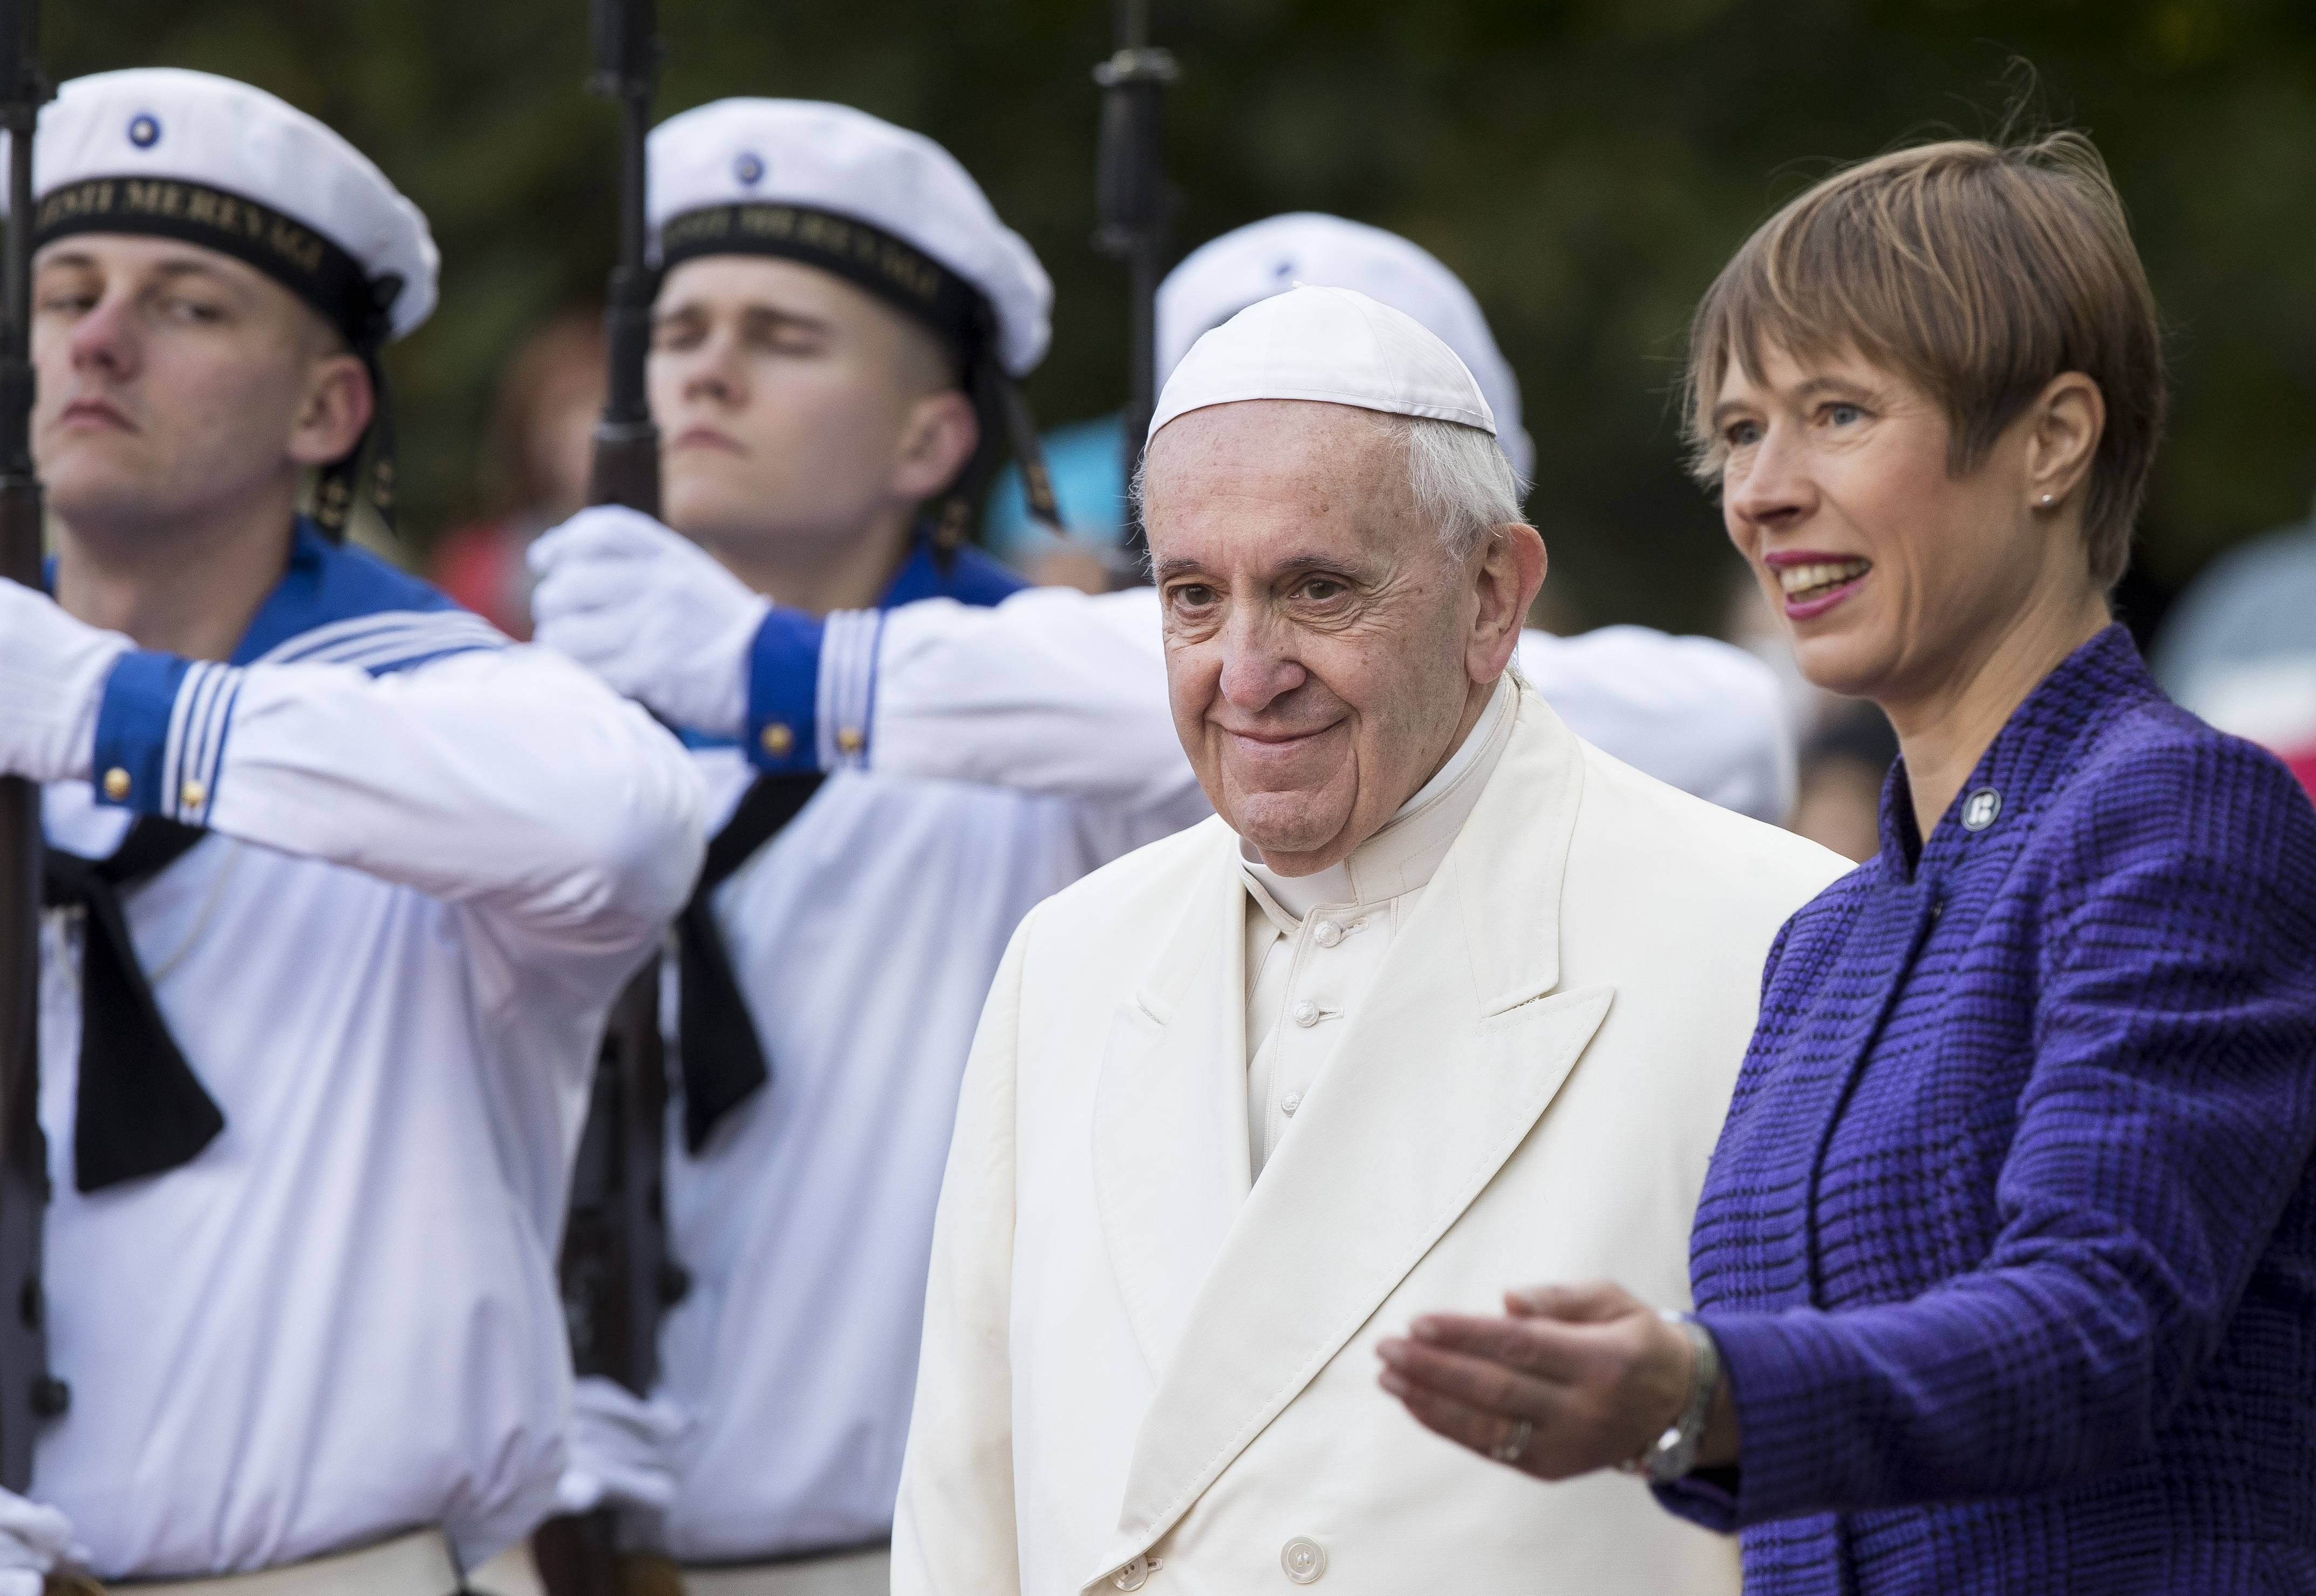 President of Estonia Kersti Kaljulaid, right, welcomes Pope Francis as he arrives at the Kadriorg Presidential Palace in Tallinn, Estonia, Tuesday, Sept. 25, 2018. Pope Francis concludes his four-day tour of the Baltics visiting Estonia.